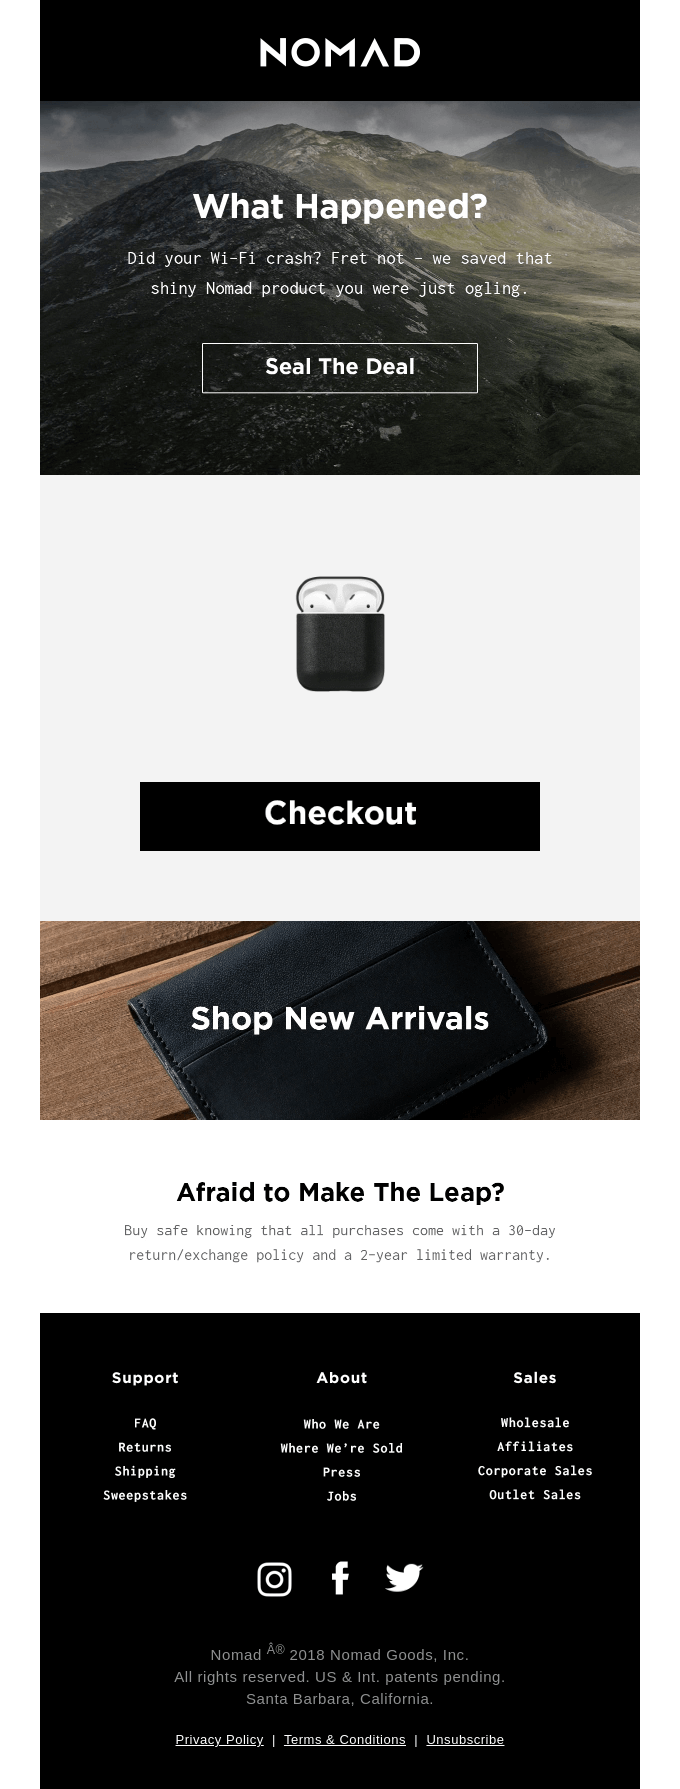 Abandoned cart emails are part of our ecommerce conversion hacks.